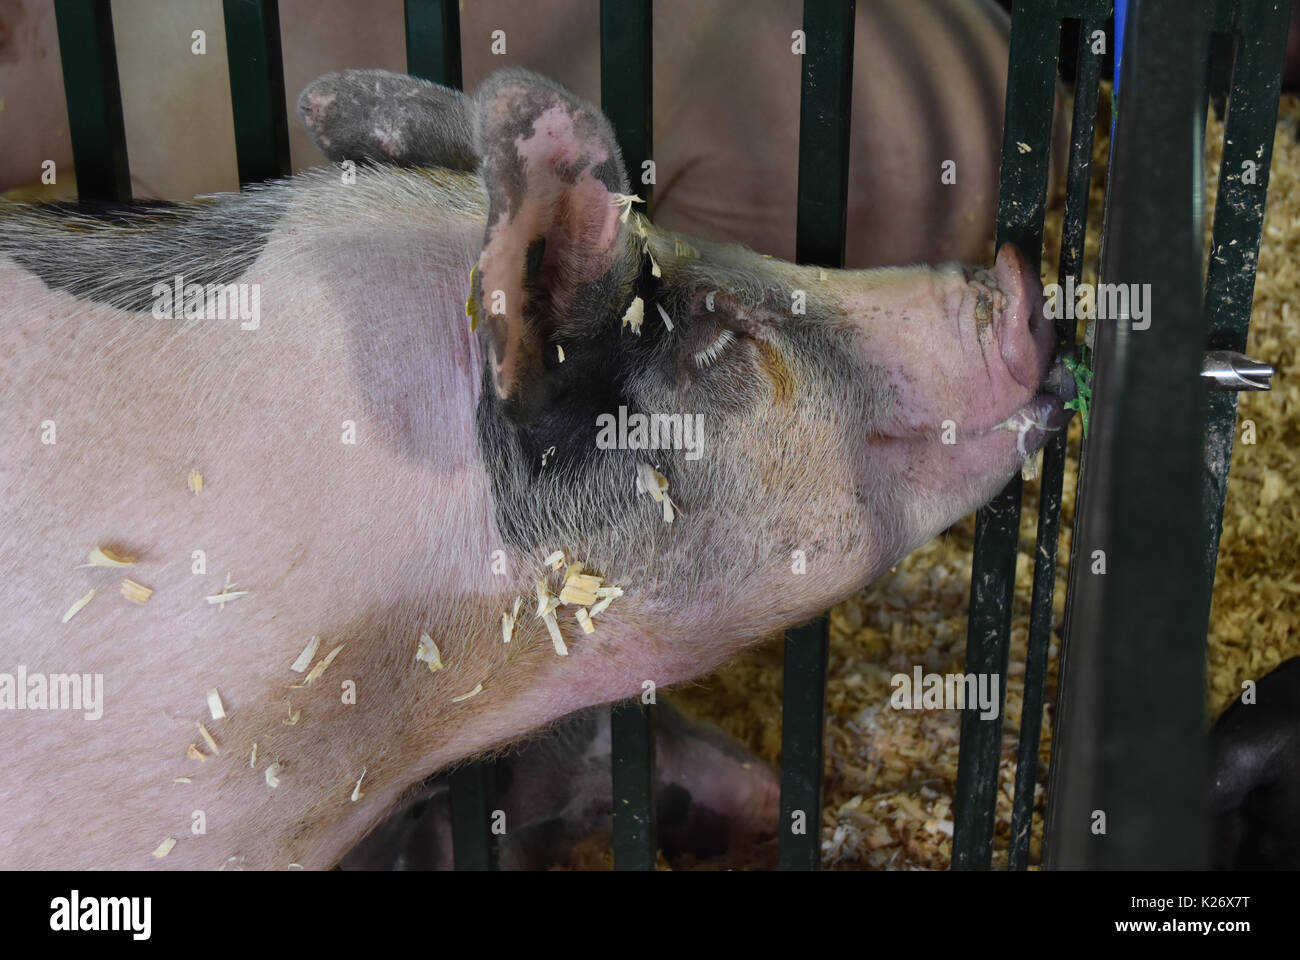 Pig drinks from water dispenser - Stock Image